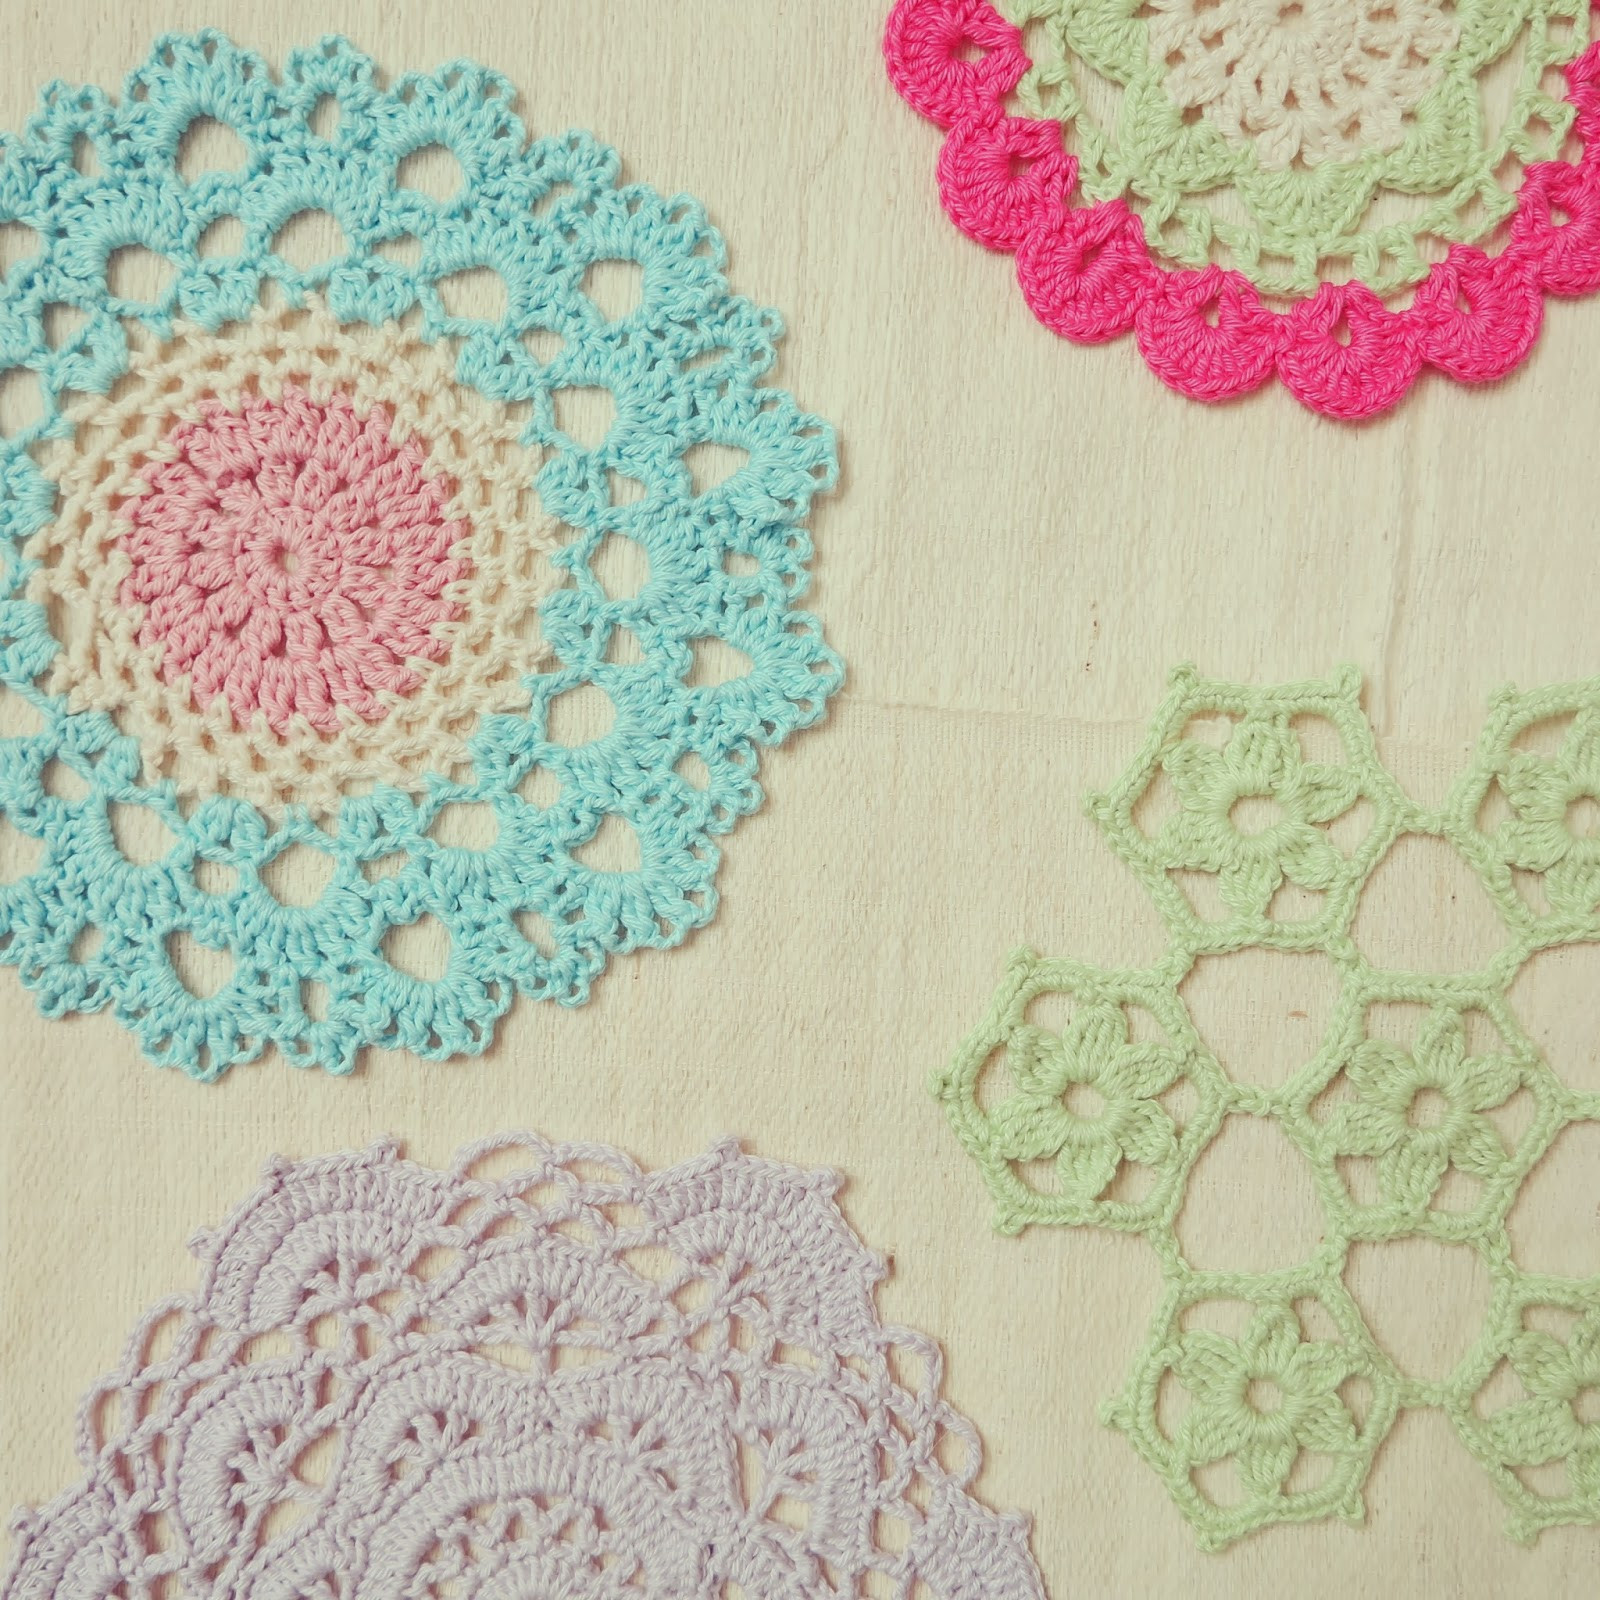 Free Doily Patterns Awesome byhaafner Crochet A Doily A Day Of Adorable 43 Pictures Free Doily Patterns